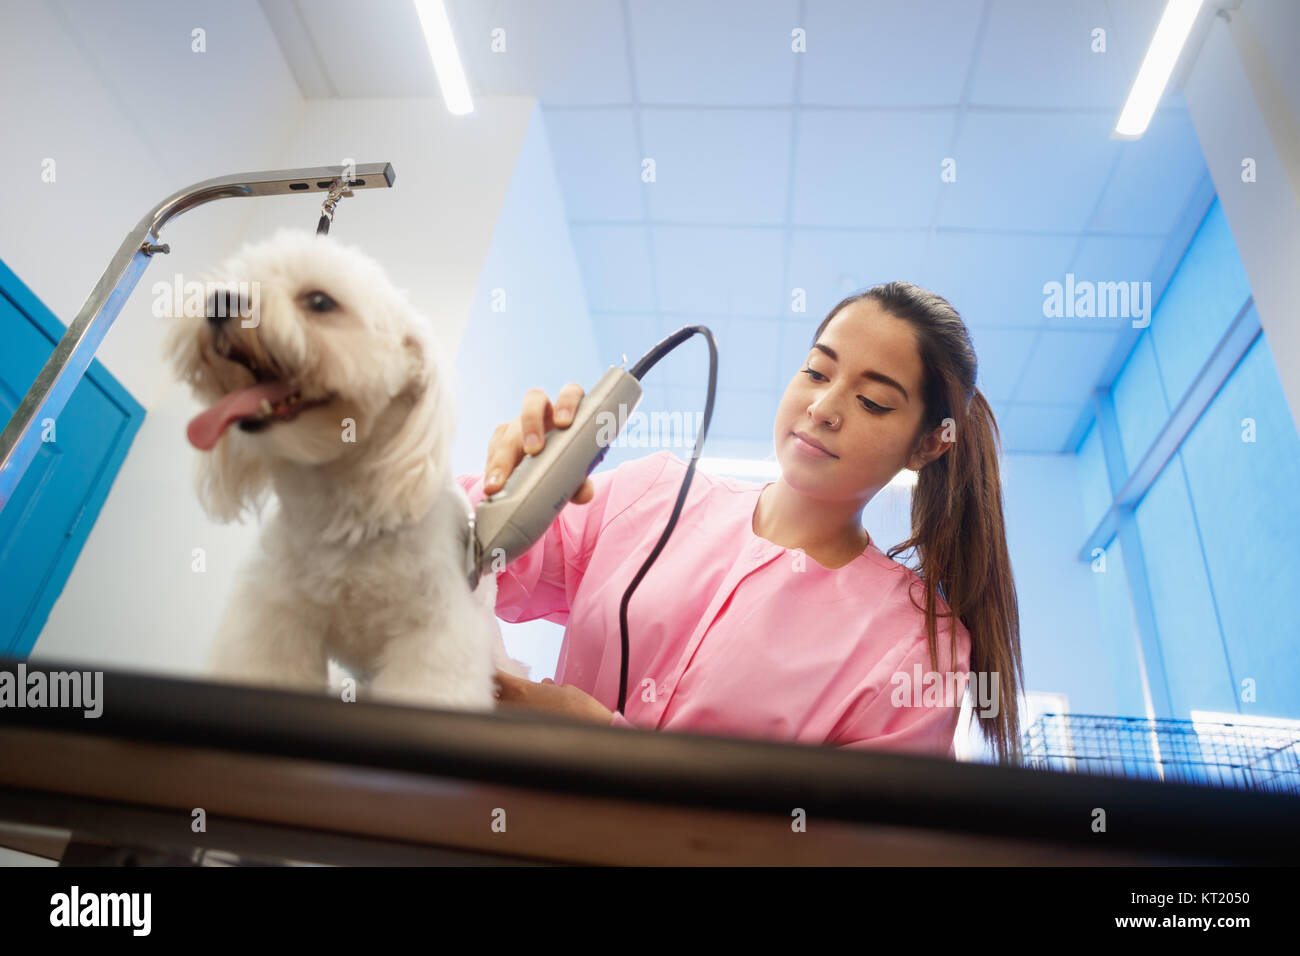 Young woman working in pet shop, trimming dog hair with clipper, girl grooming puppy for beauty in store. People, - Stock Image